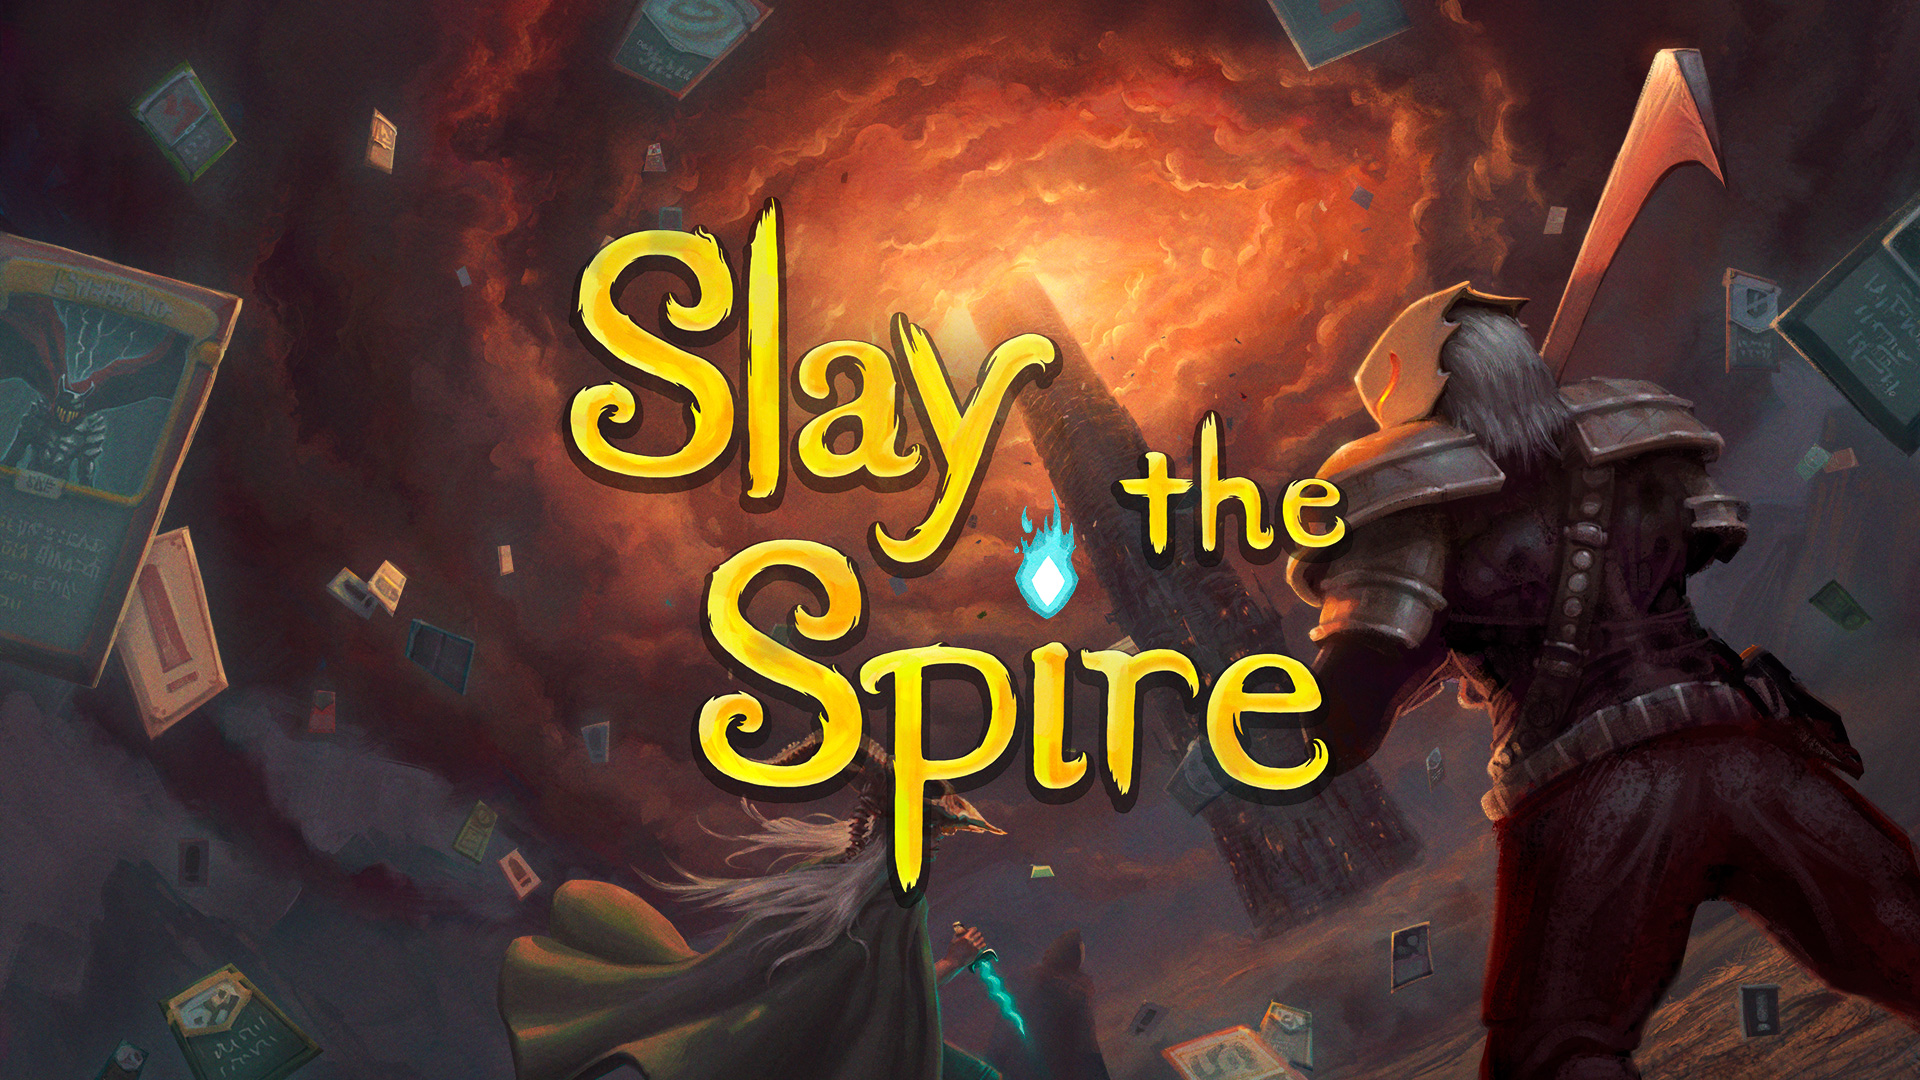 [U: Available] Popular deckbuilding roguelike game Slay the Spire comes to Chromebooks next week